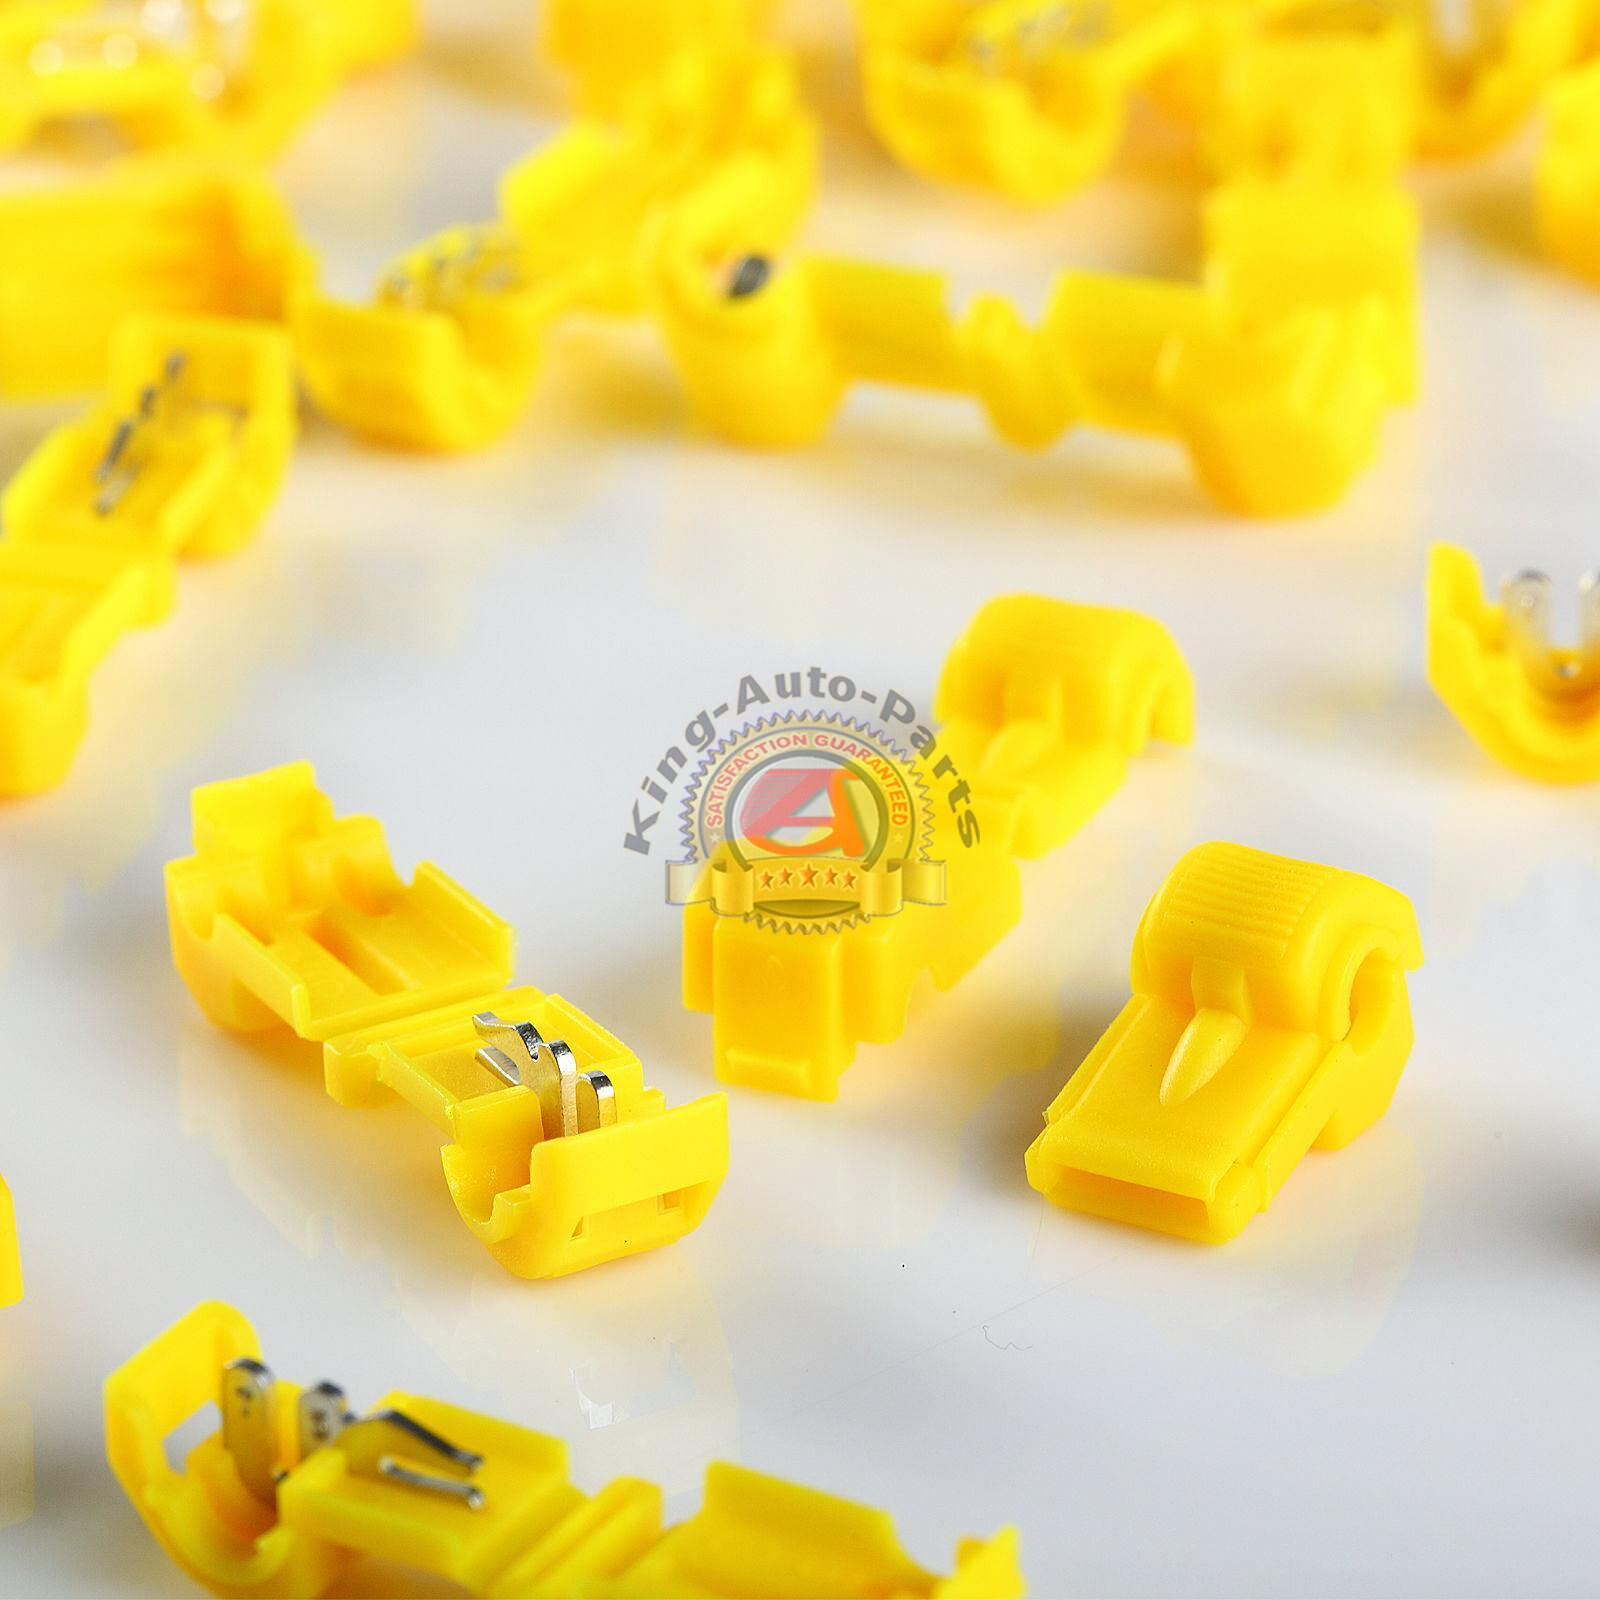 T Tap Quick Wire Connectors Yellow 12 10 Awg Gauge Car Audio Wiring 1 Of 1only 5 Available